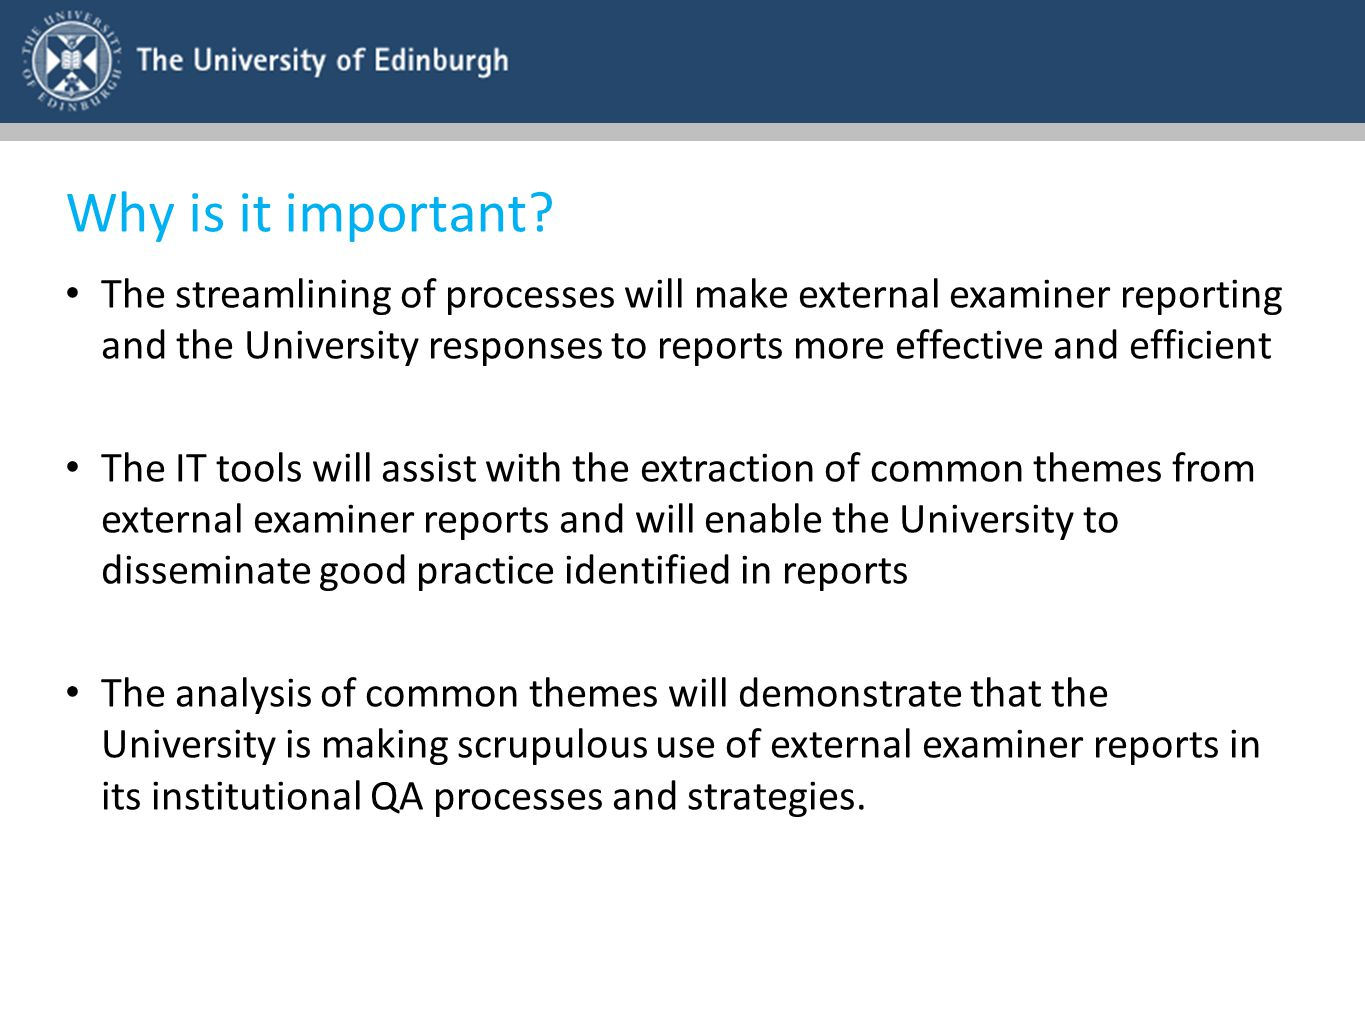 Why is it important? The streamlining of processes will make external examiner reporting and the University responses to reports more effective and ef